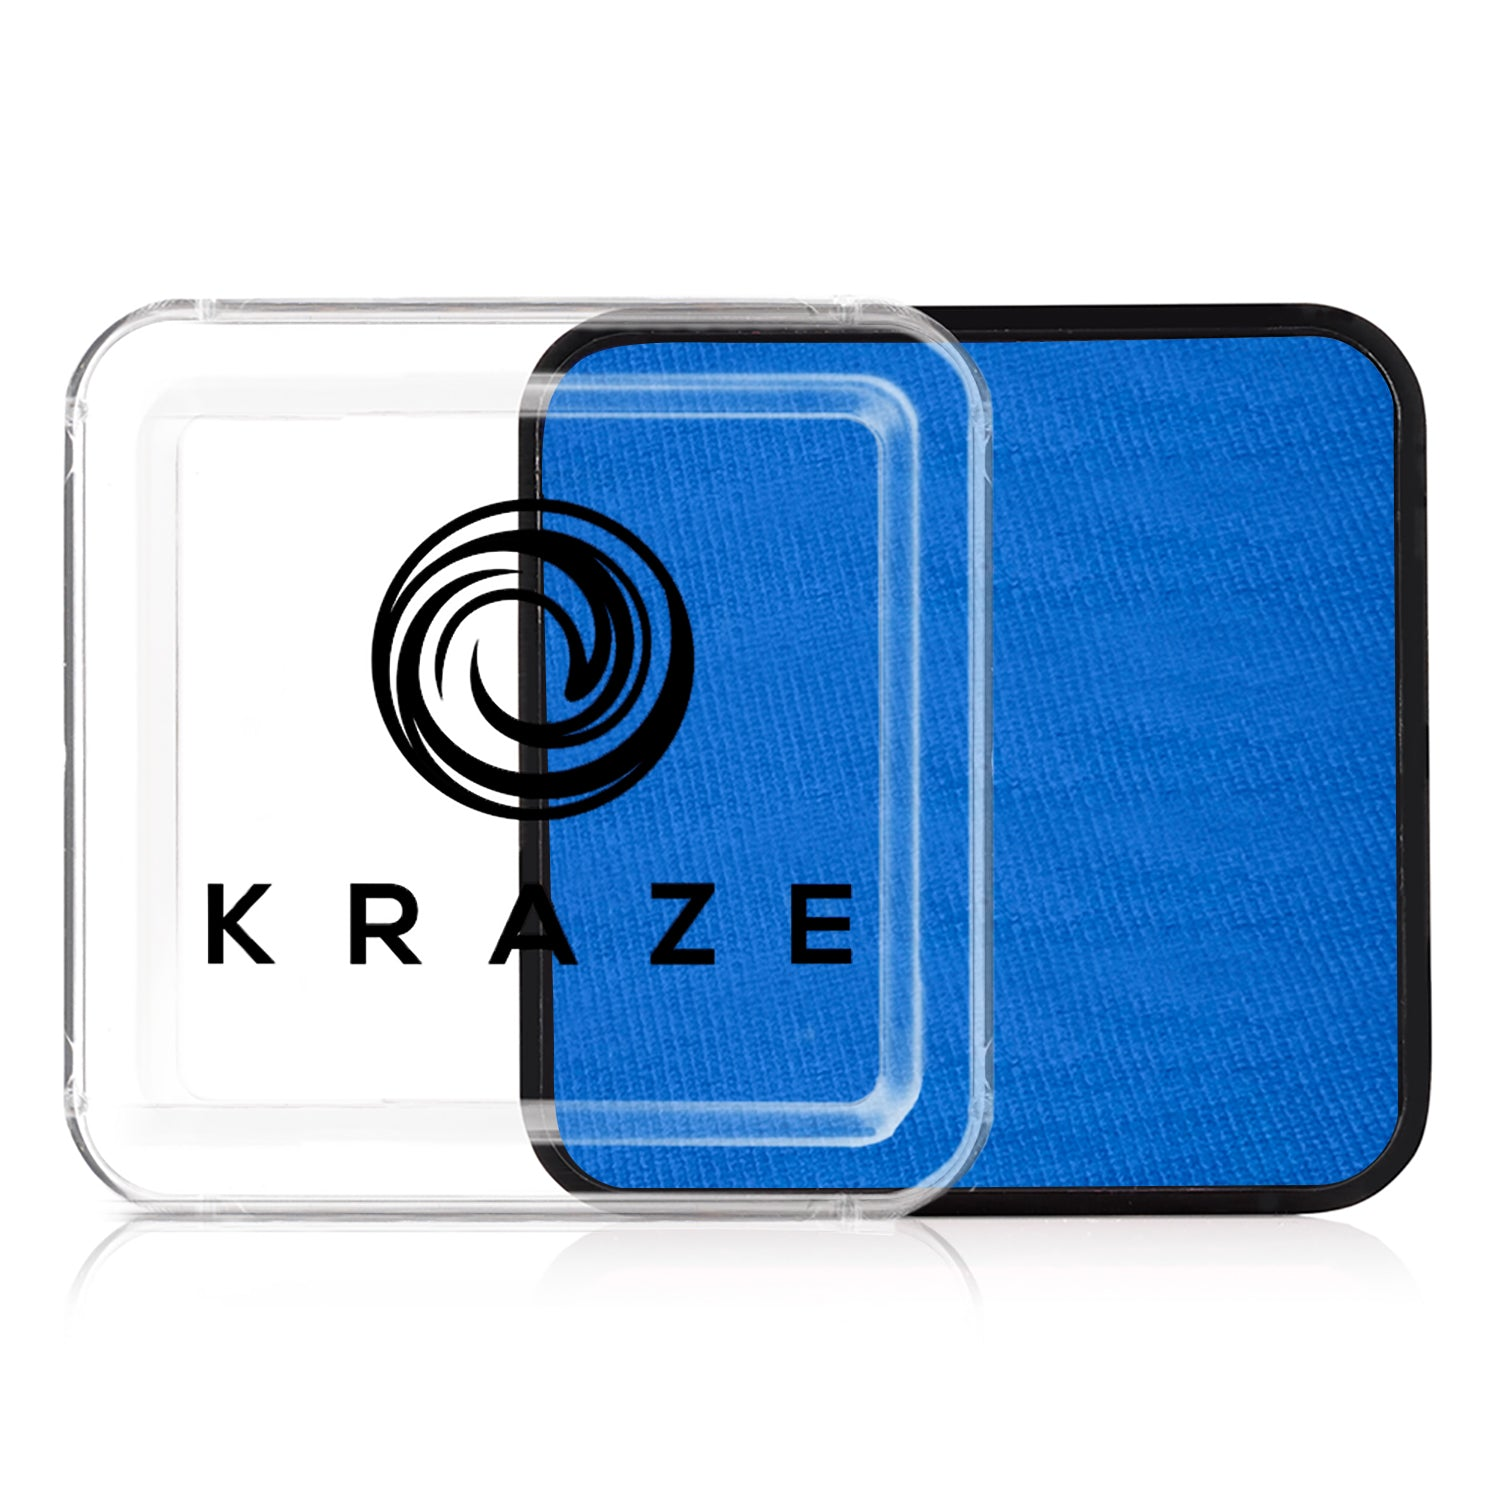 Kraze FX Face Paint - 25 gm - Olympic Blue (Non Staining)